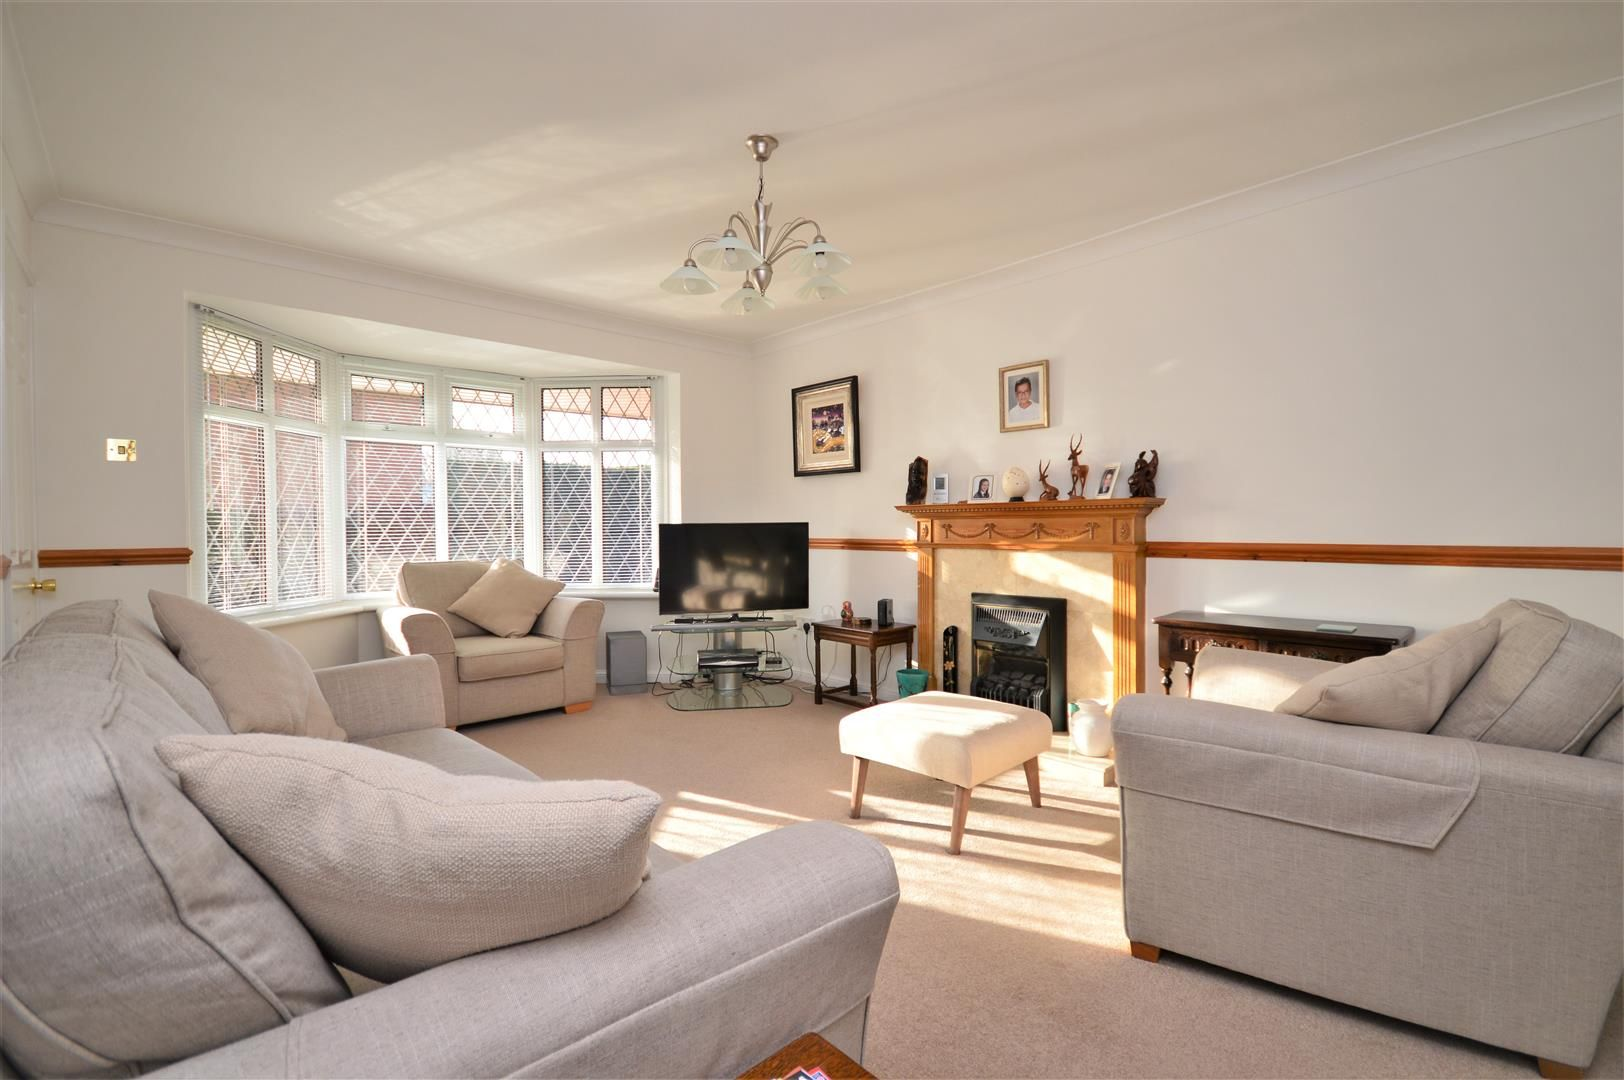 4 bed detached for sale in Hereford 2